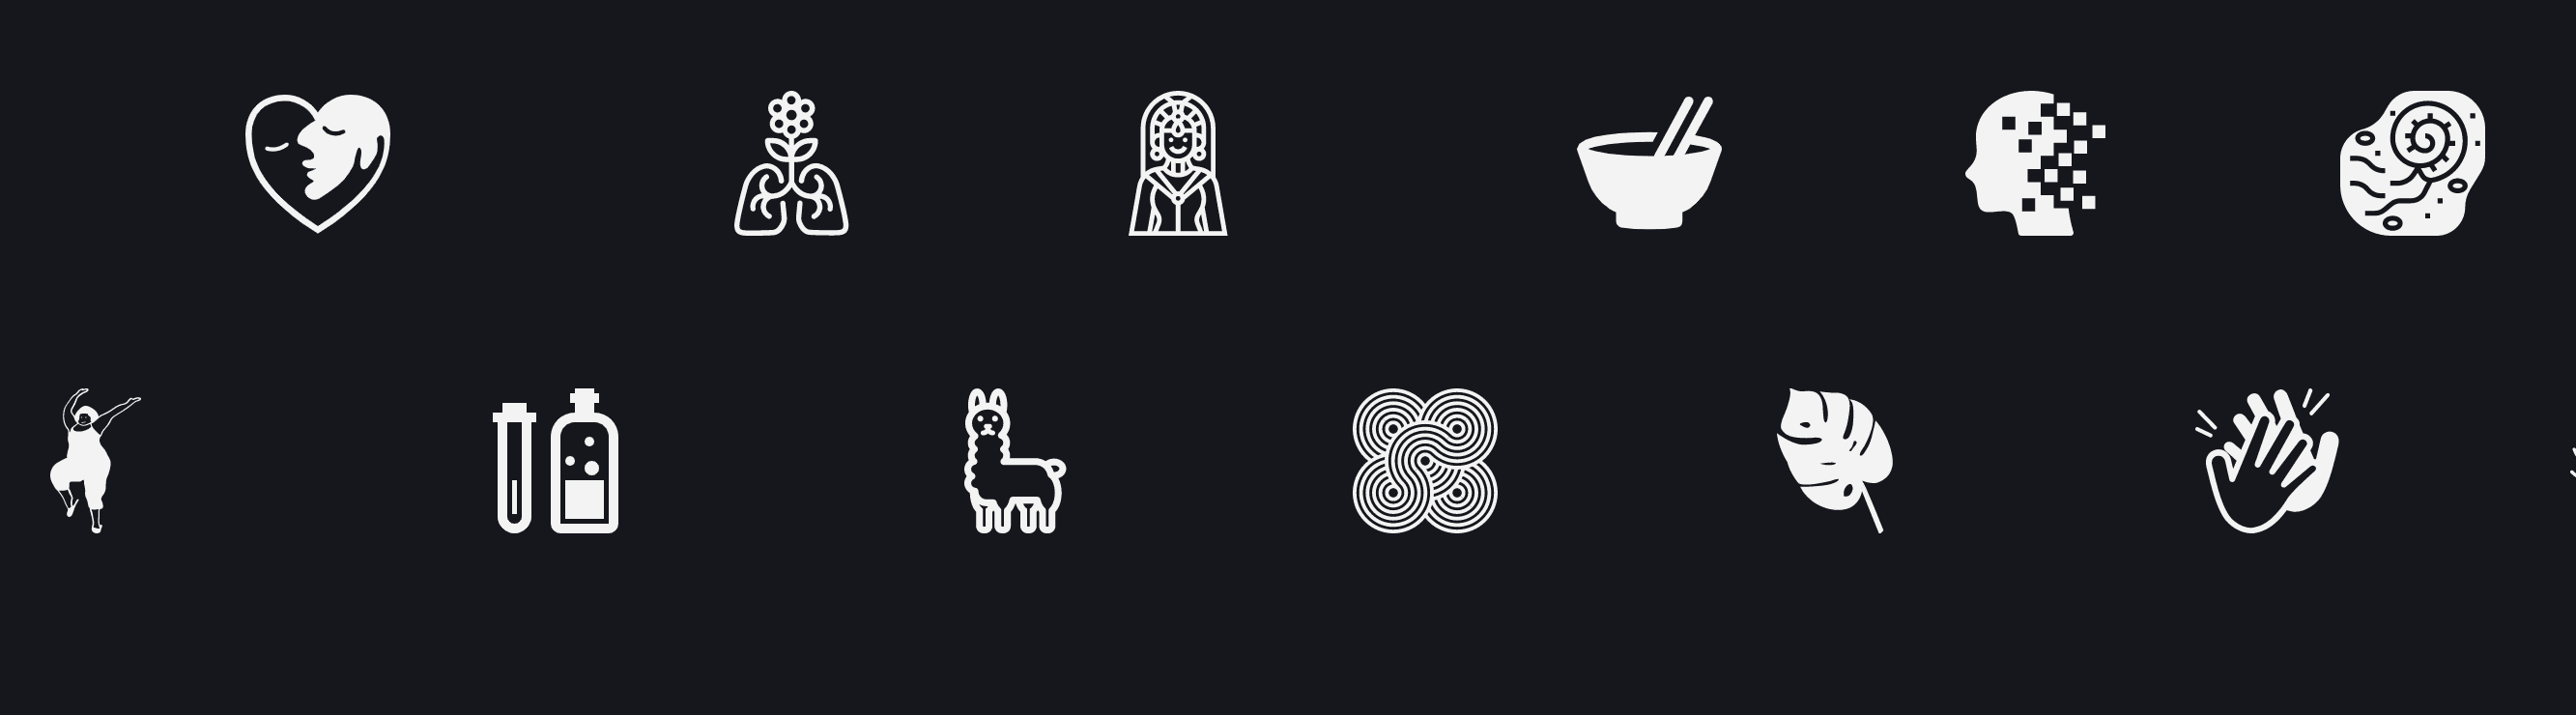 Icons from The Noun Project.